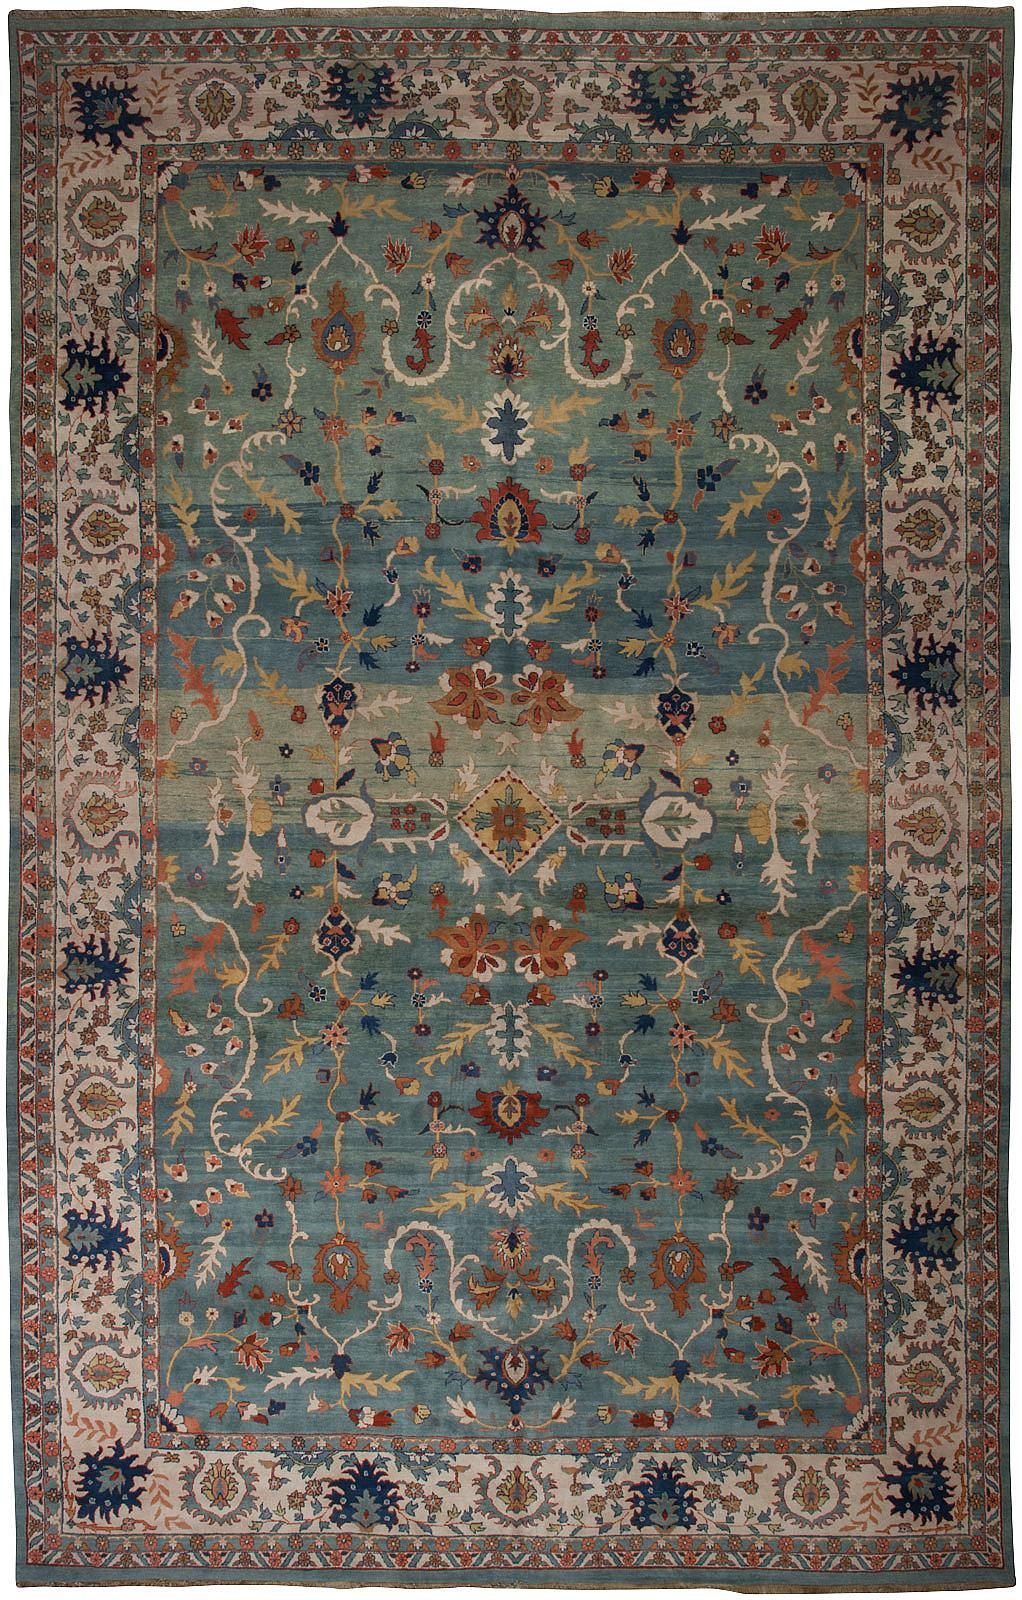 Shalom Brothers Oversized Rugs Collection Design 4199 21 Rugs Oversized Rugs Antique Rugs